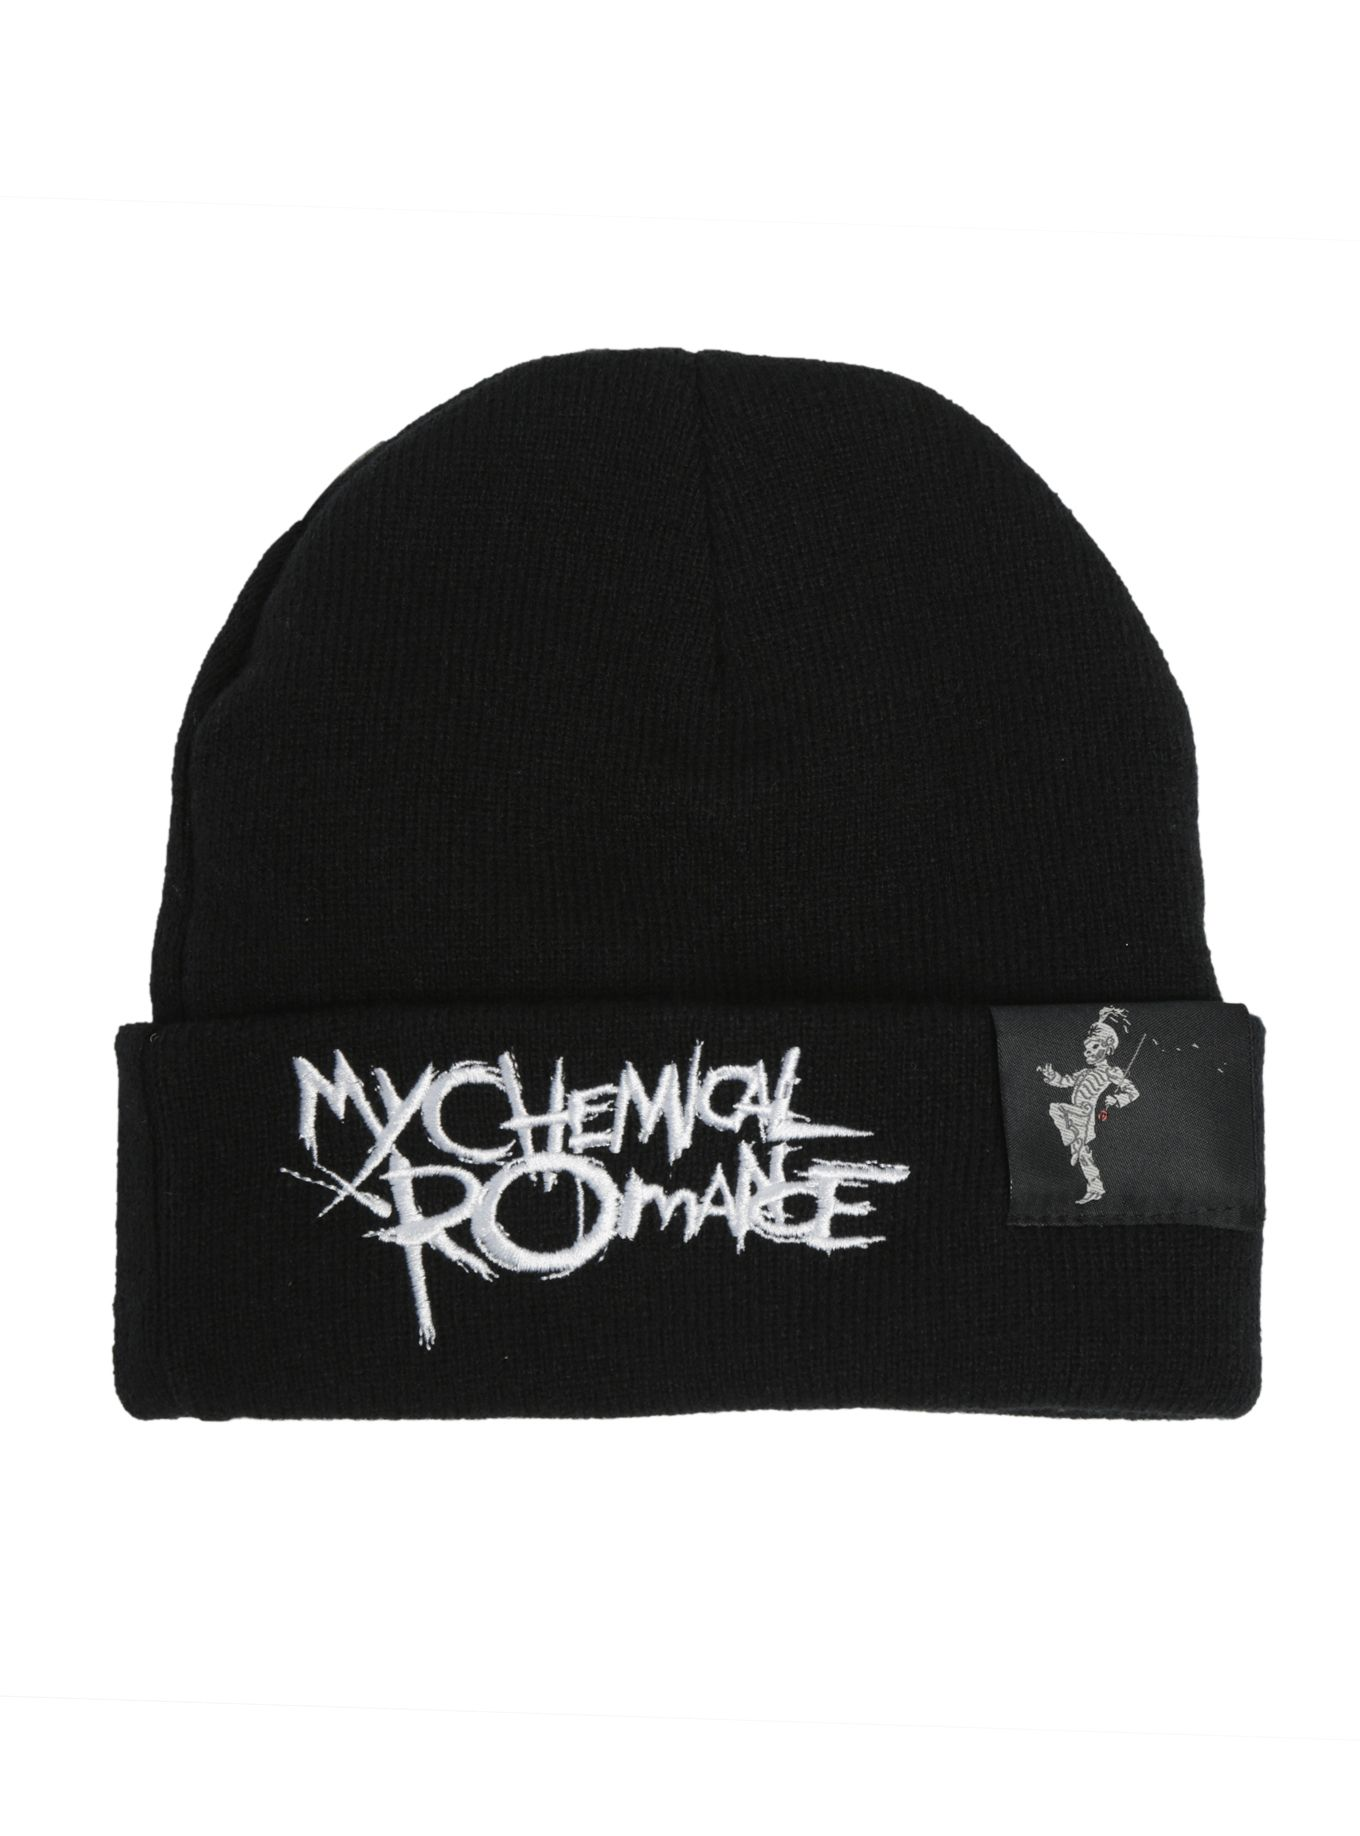 timeless design e54d5 dc961 My Chemical Romance Black Parade Watchman Beanie   Hot Topic